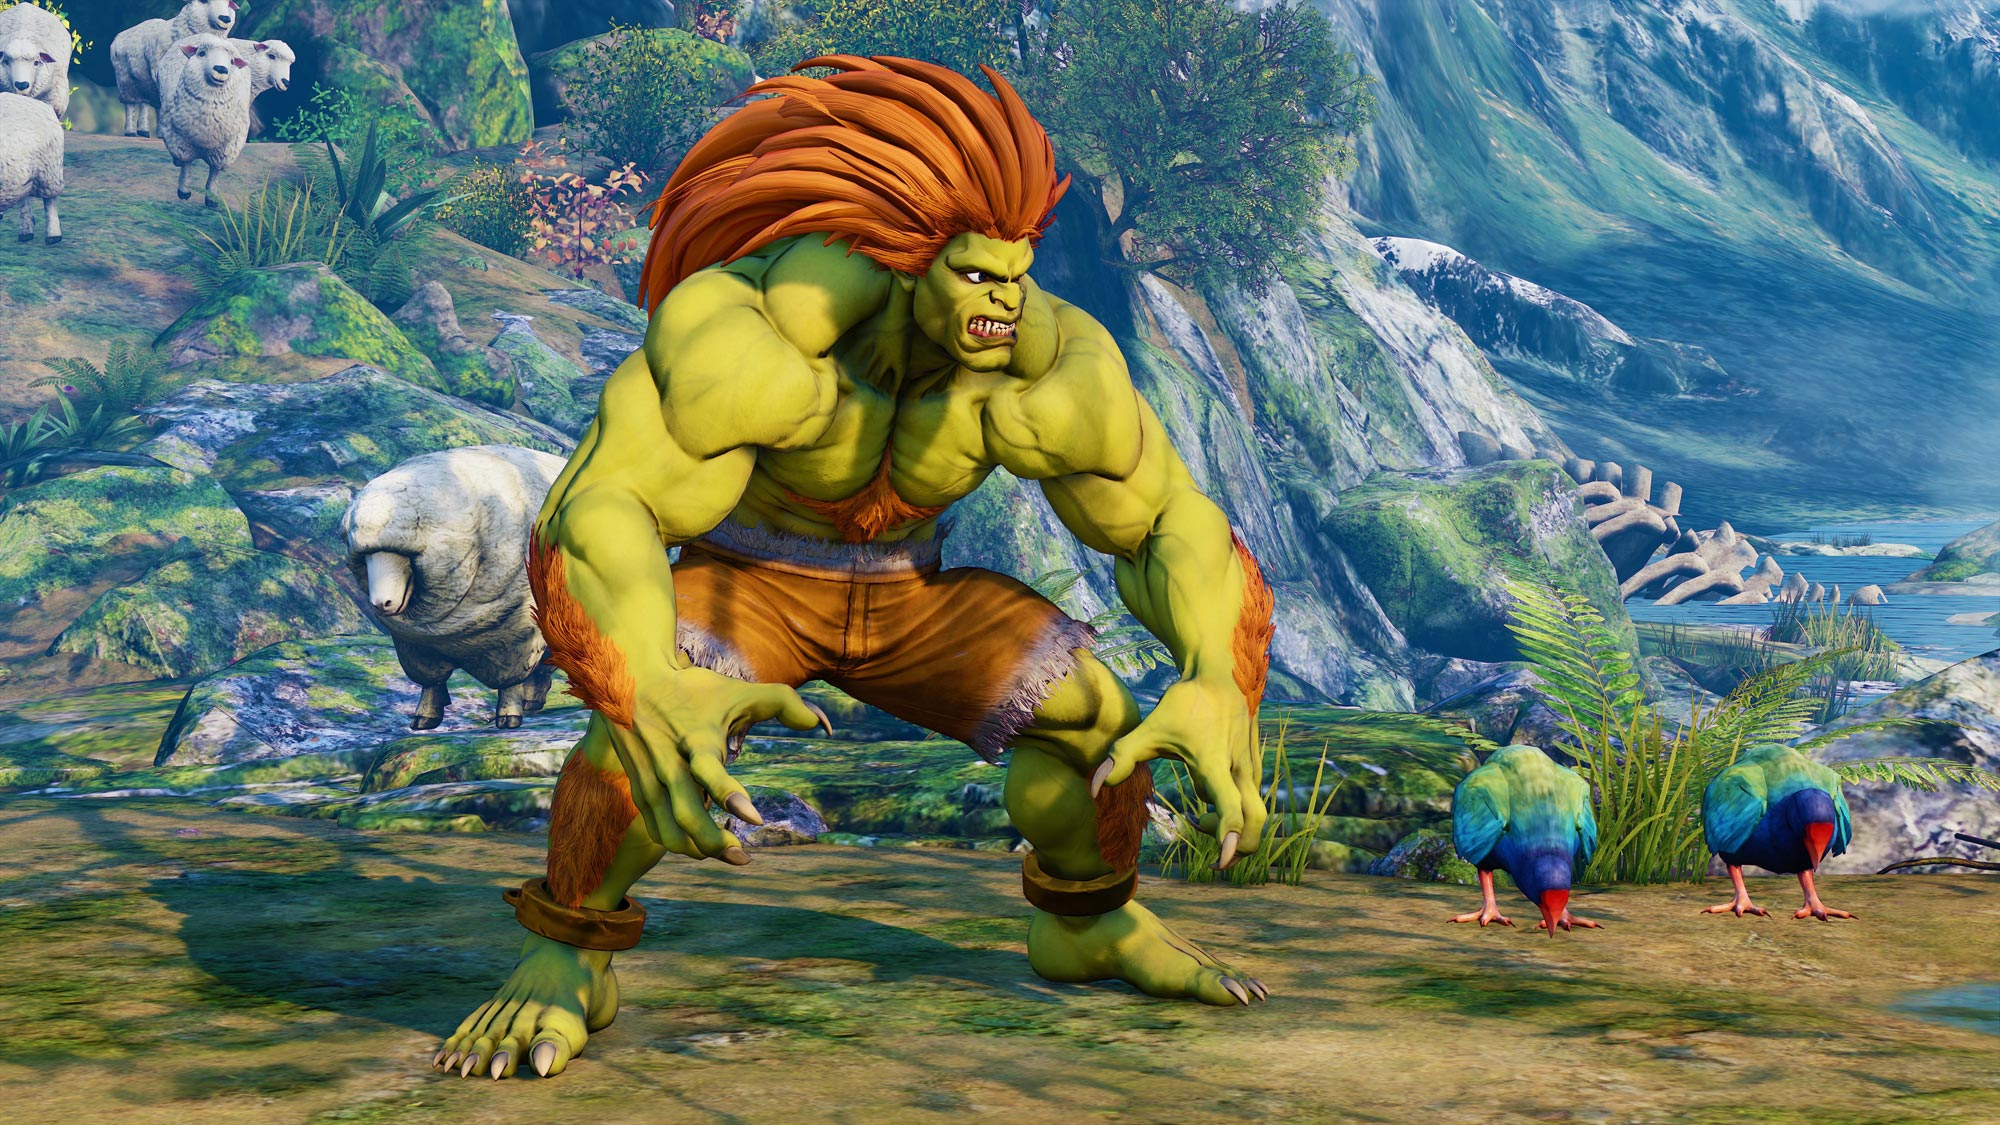 Blanka in Street Fighter 5: Arcade Edition 8 out of 11 image gallery